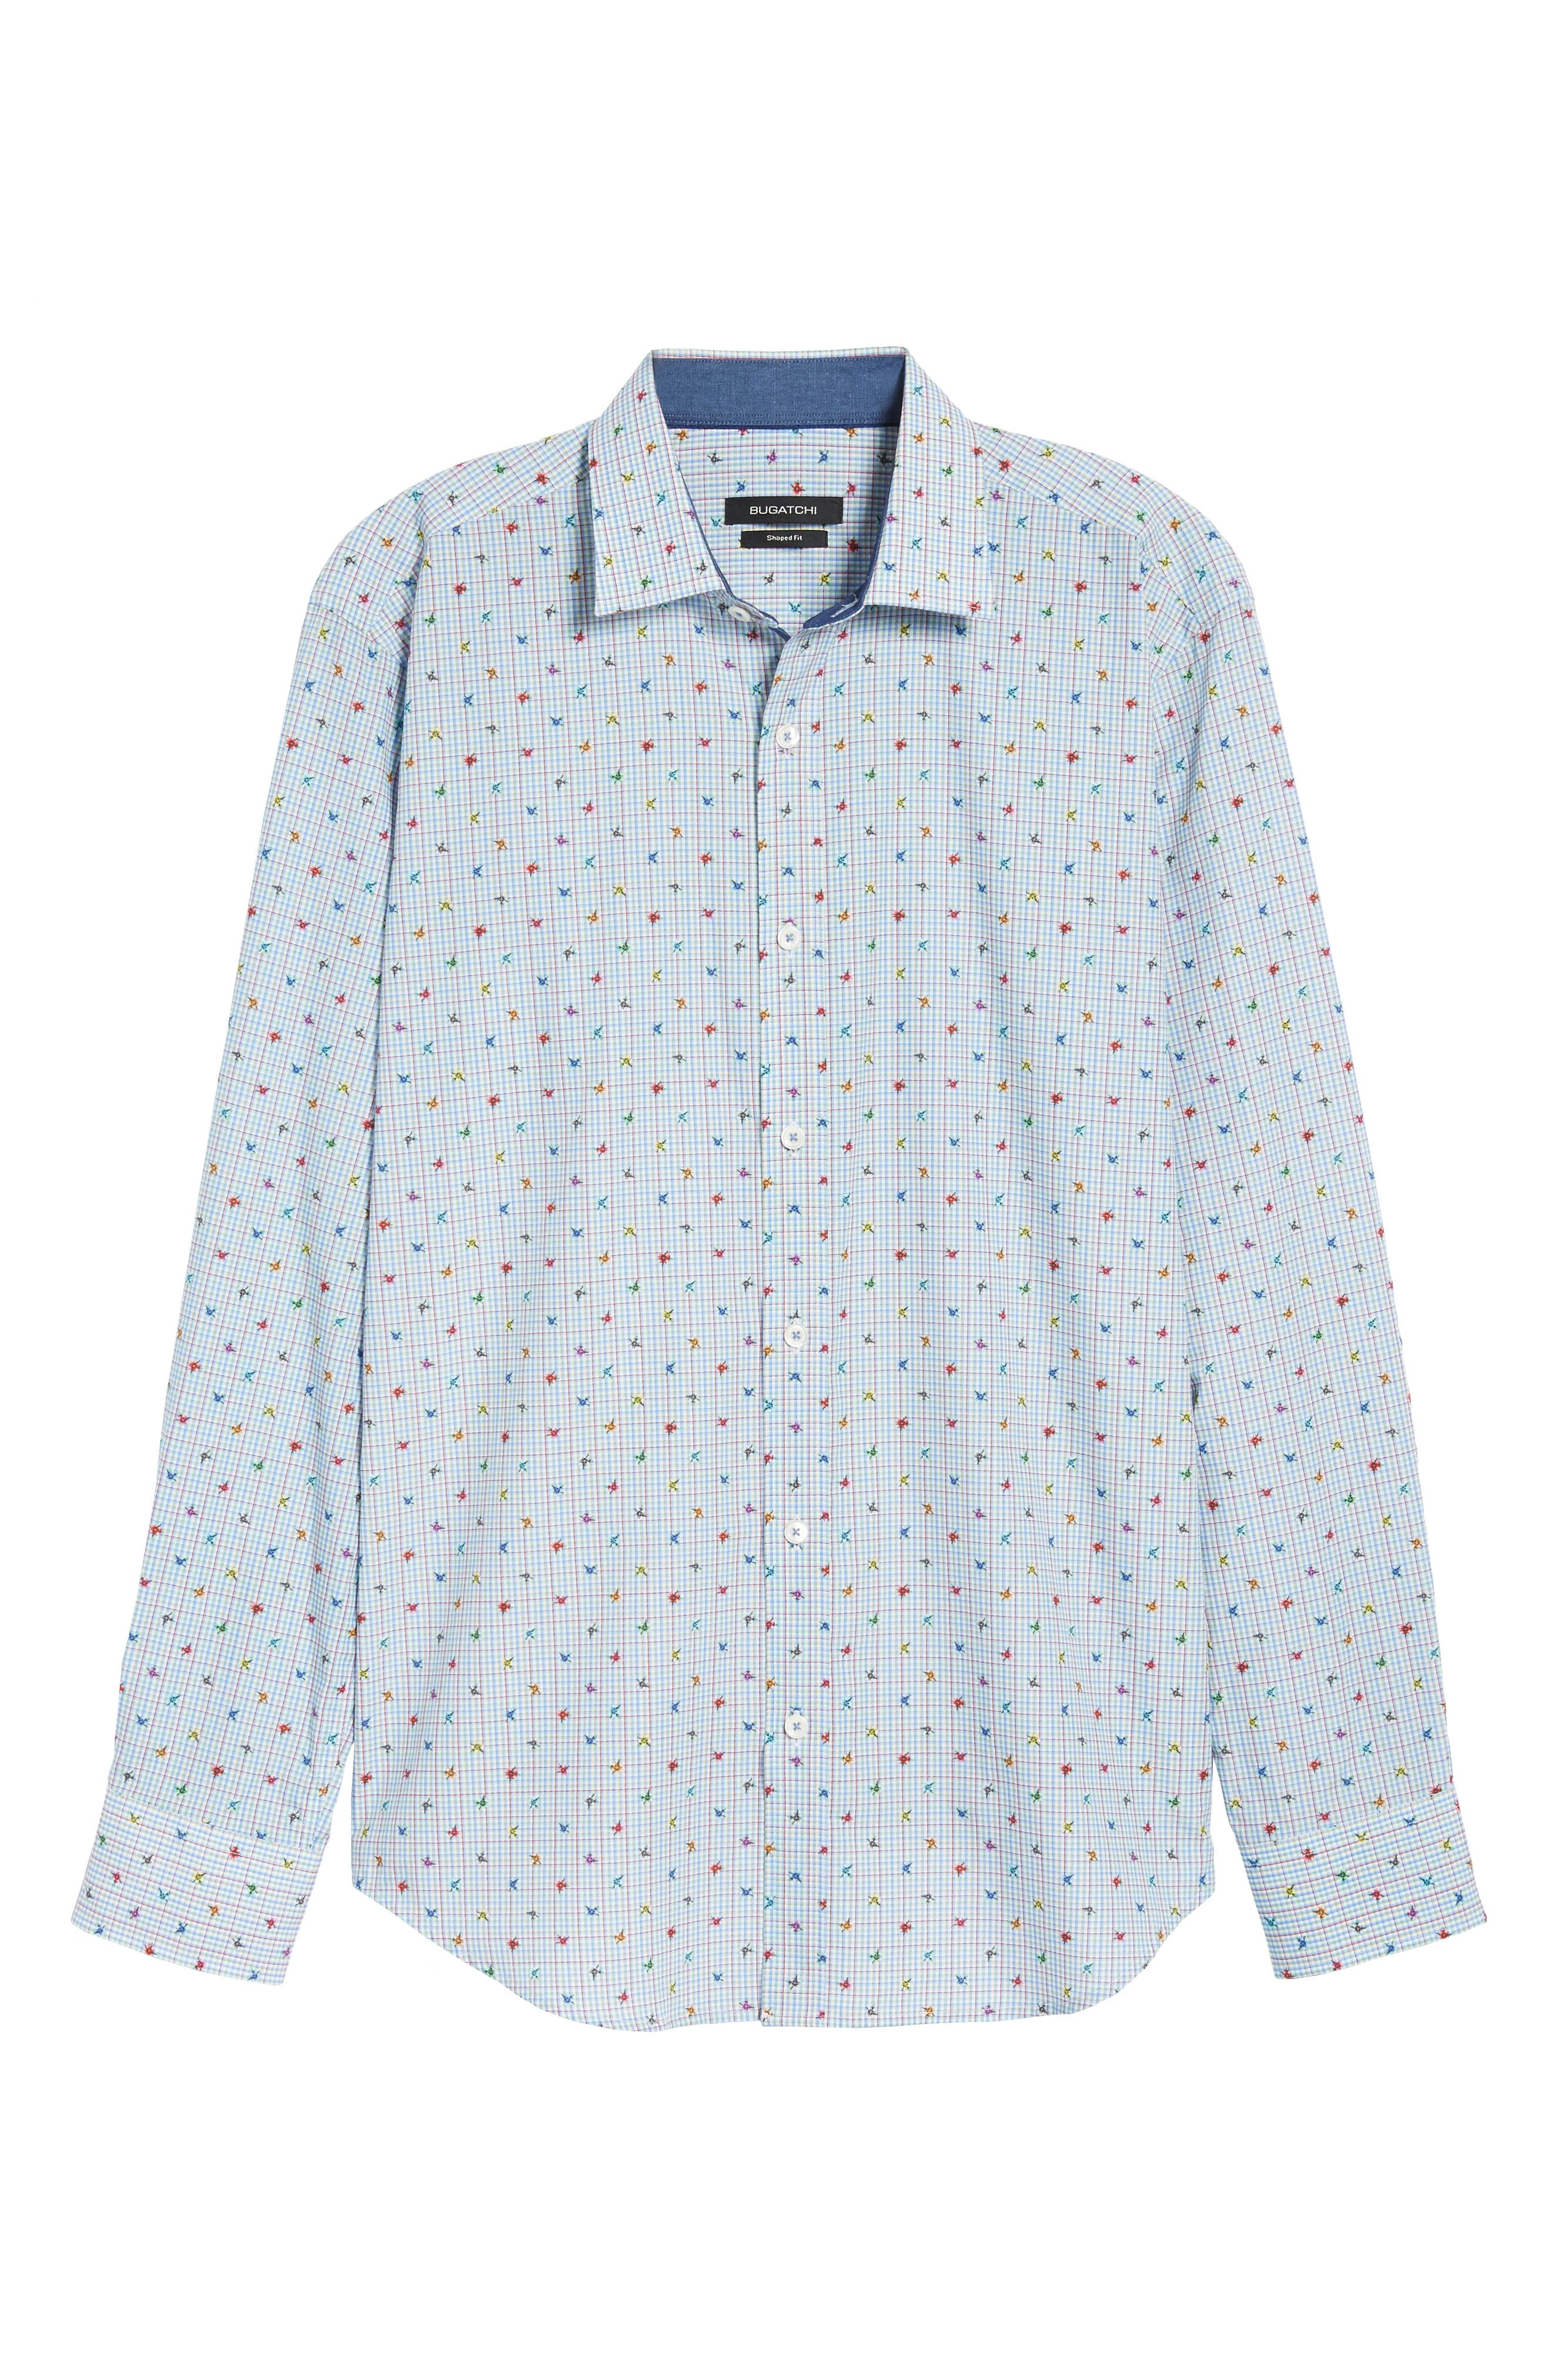 Shaped Fit Floral Check Sport Shirt,                             Alternate thumbnail 6, color,                             601